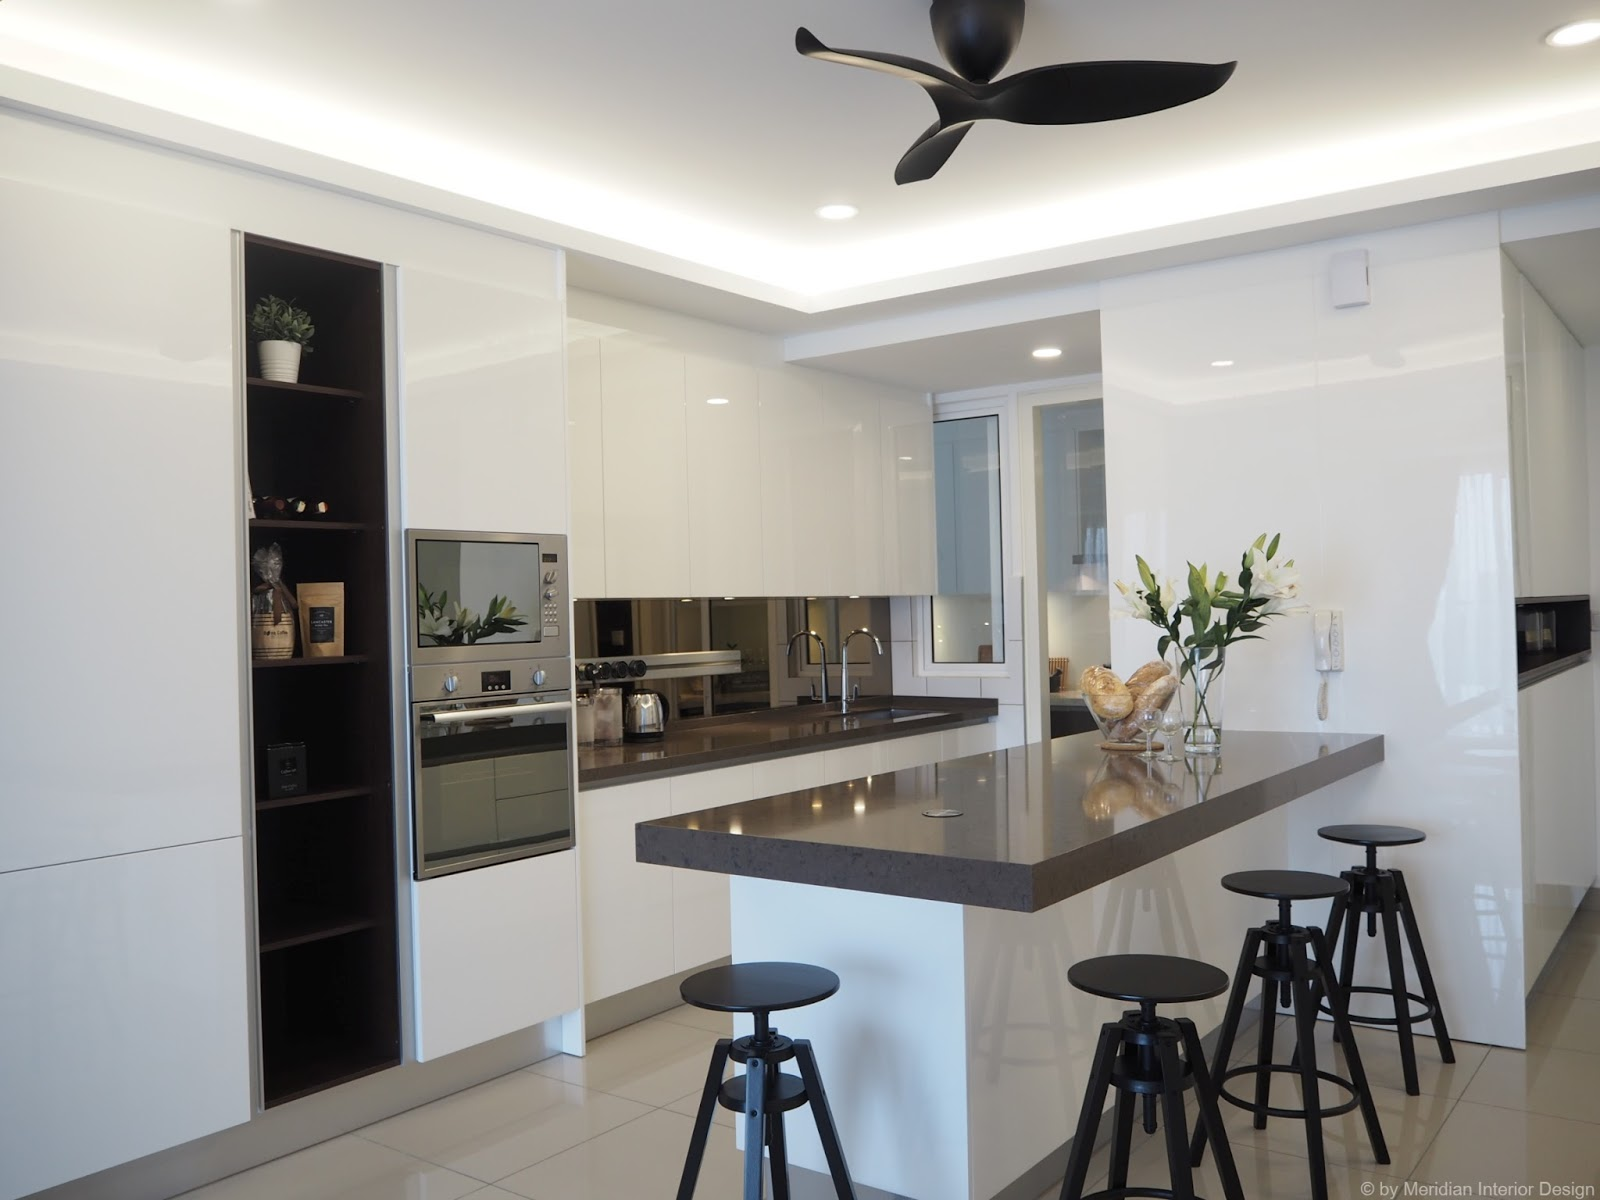 Kitchen Interior Design: Interior Design And Kitchen Design, In Kuala